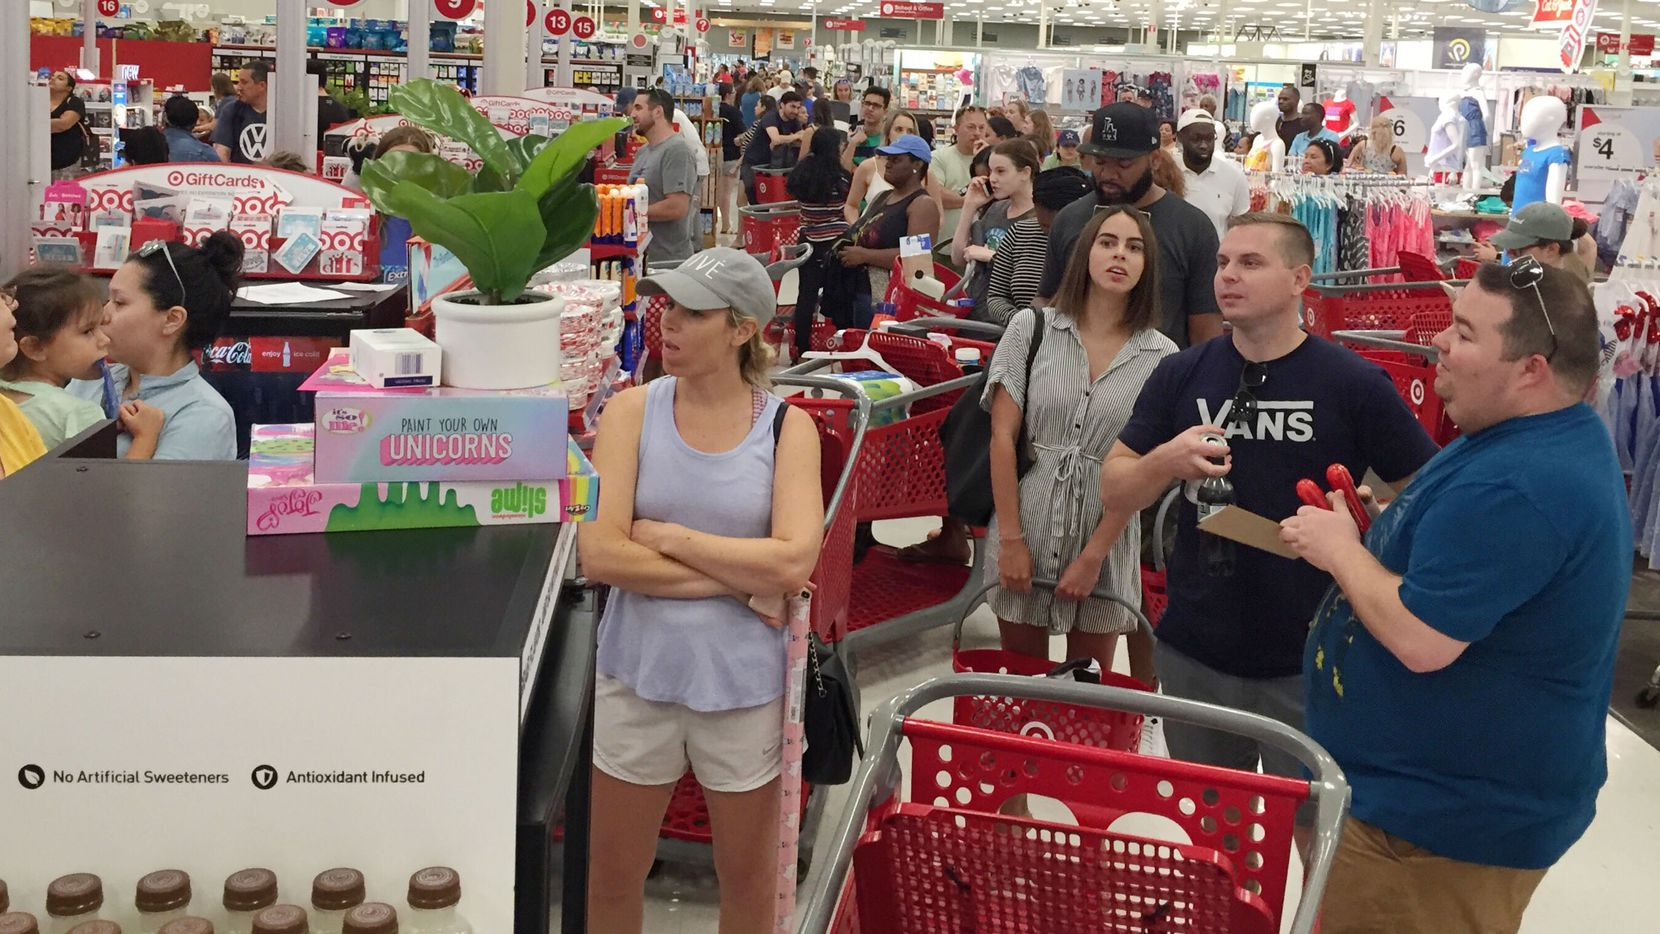 Target customers stand in long lines at the store on North Haskell Ave on Saturday afternoon June 15, 2019 in Dallas, Texas.  A system glitch at Target stores nationwide has clogged checkout aisles.(Irwin Thompson/The Dallas Morning News)